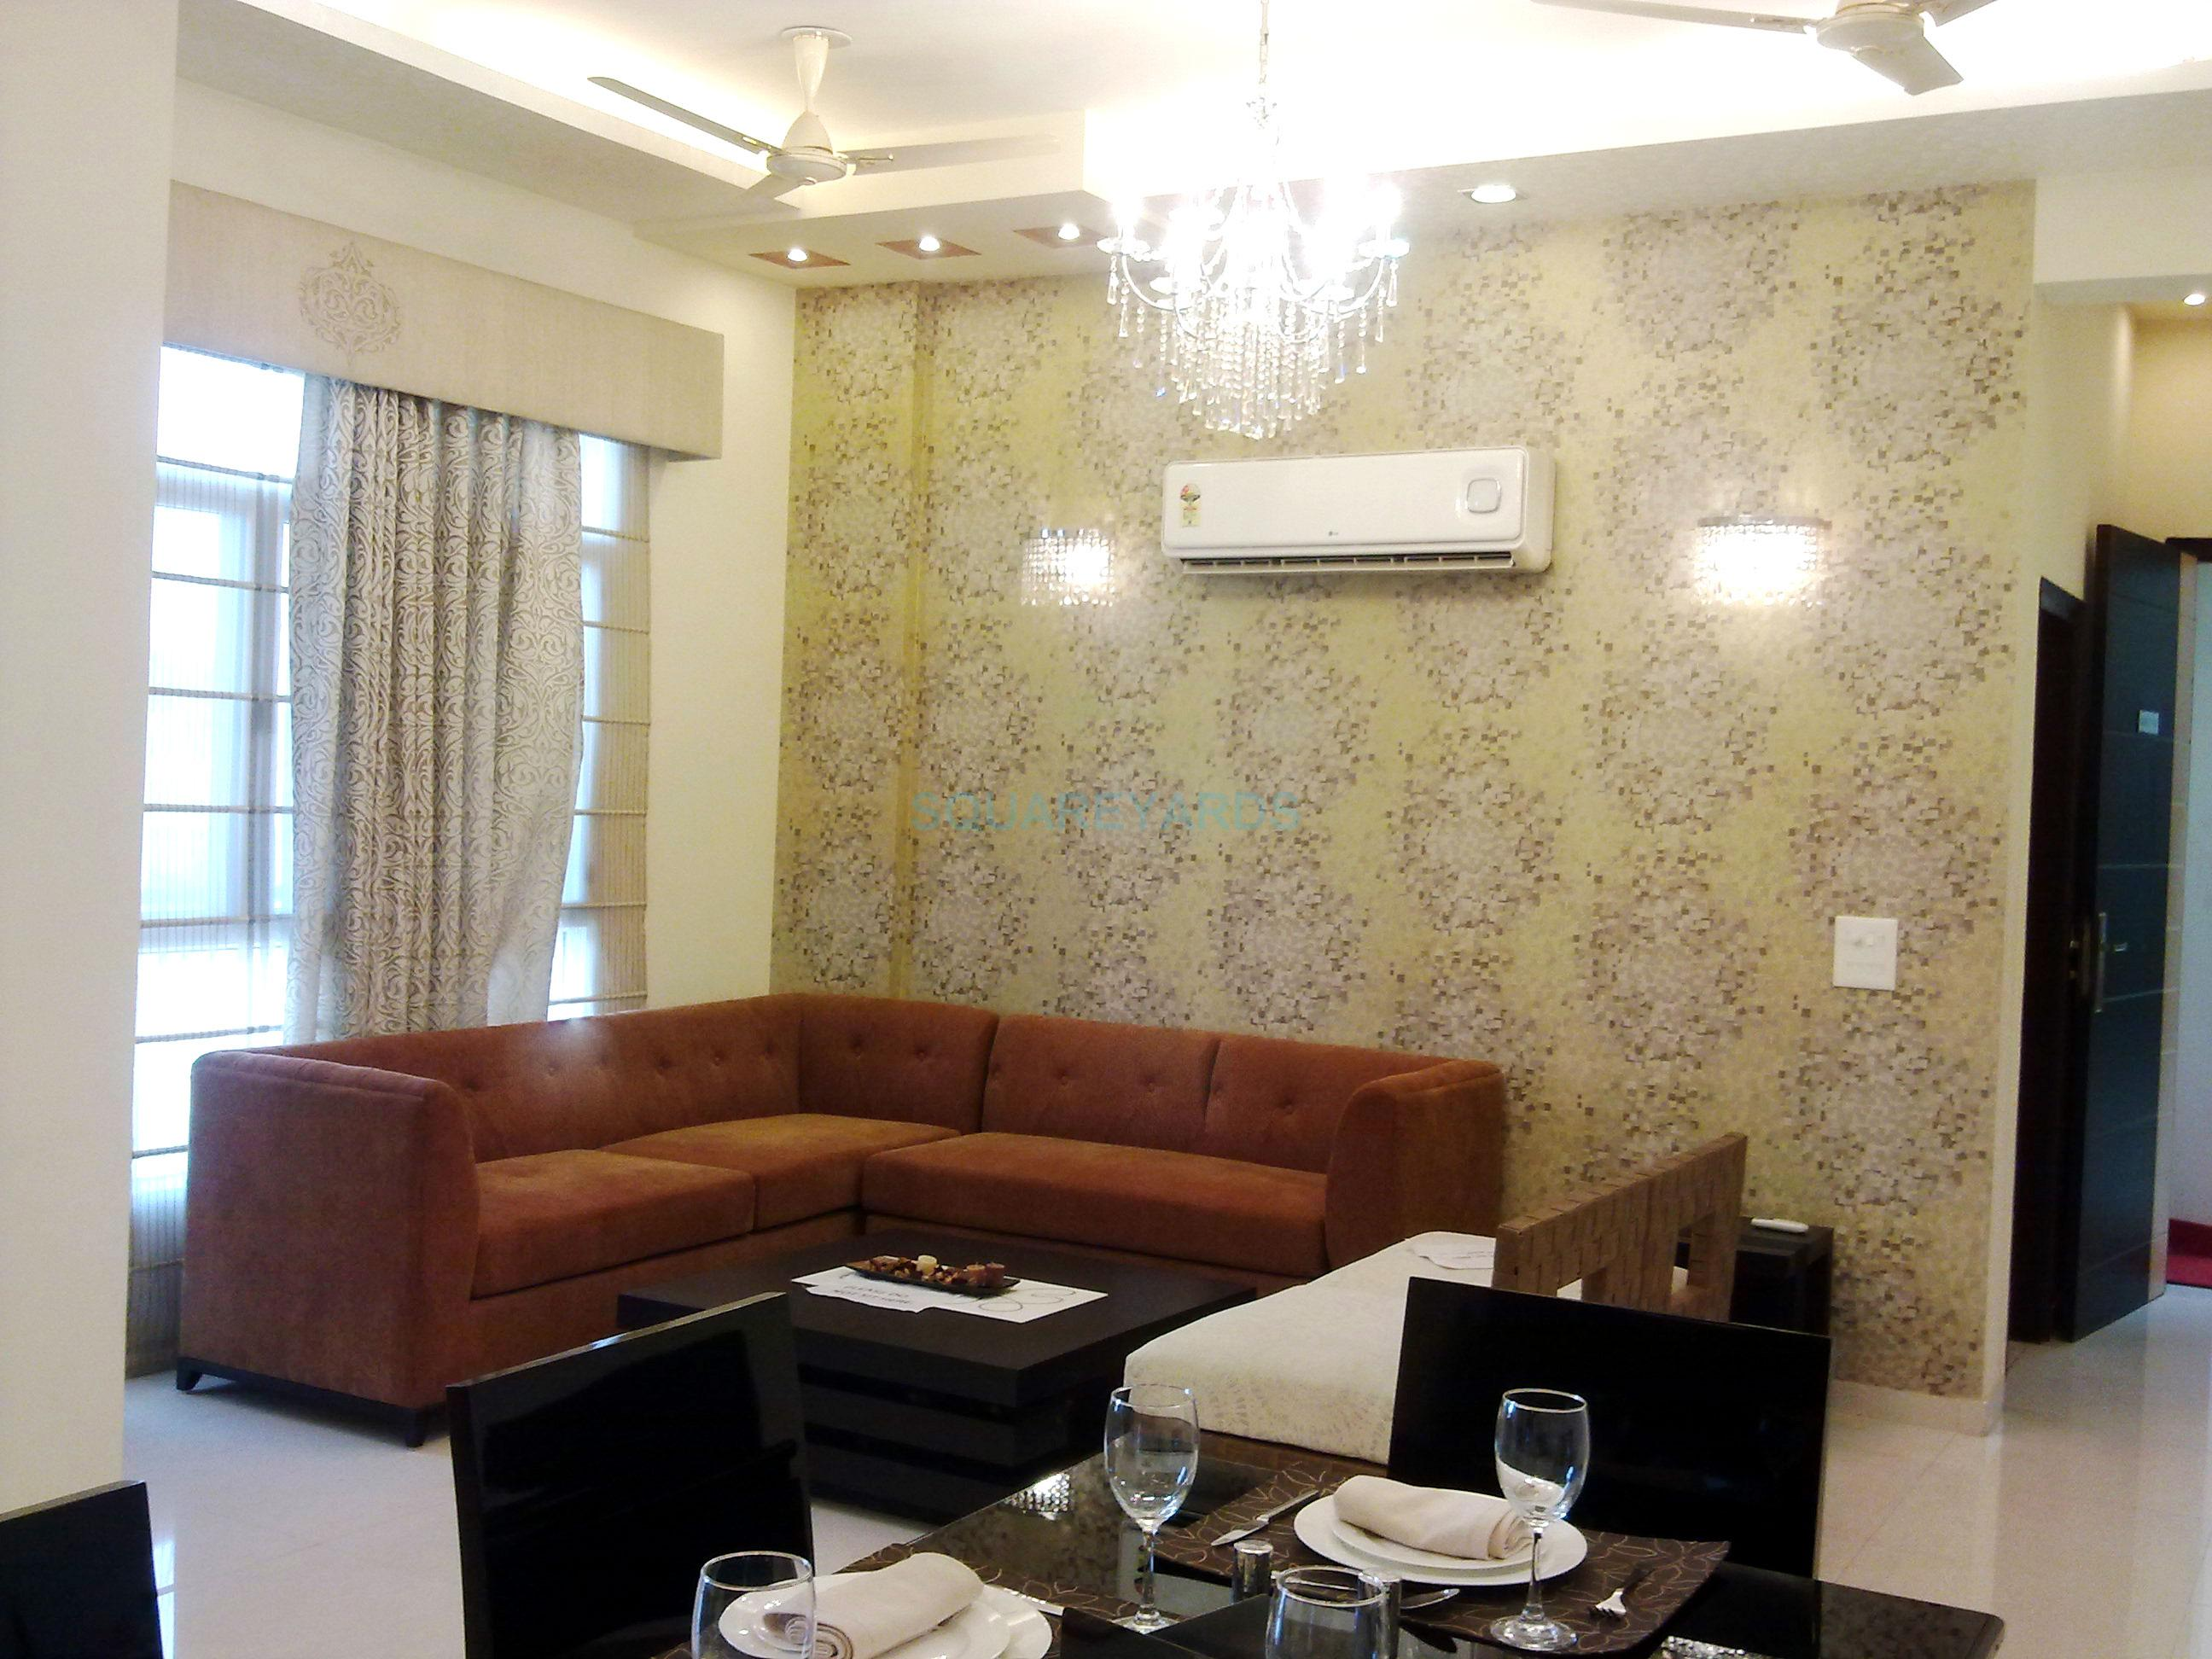 prateek laurel apartment interiors1